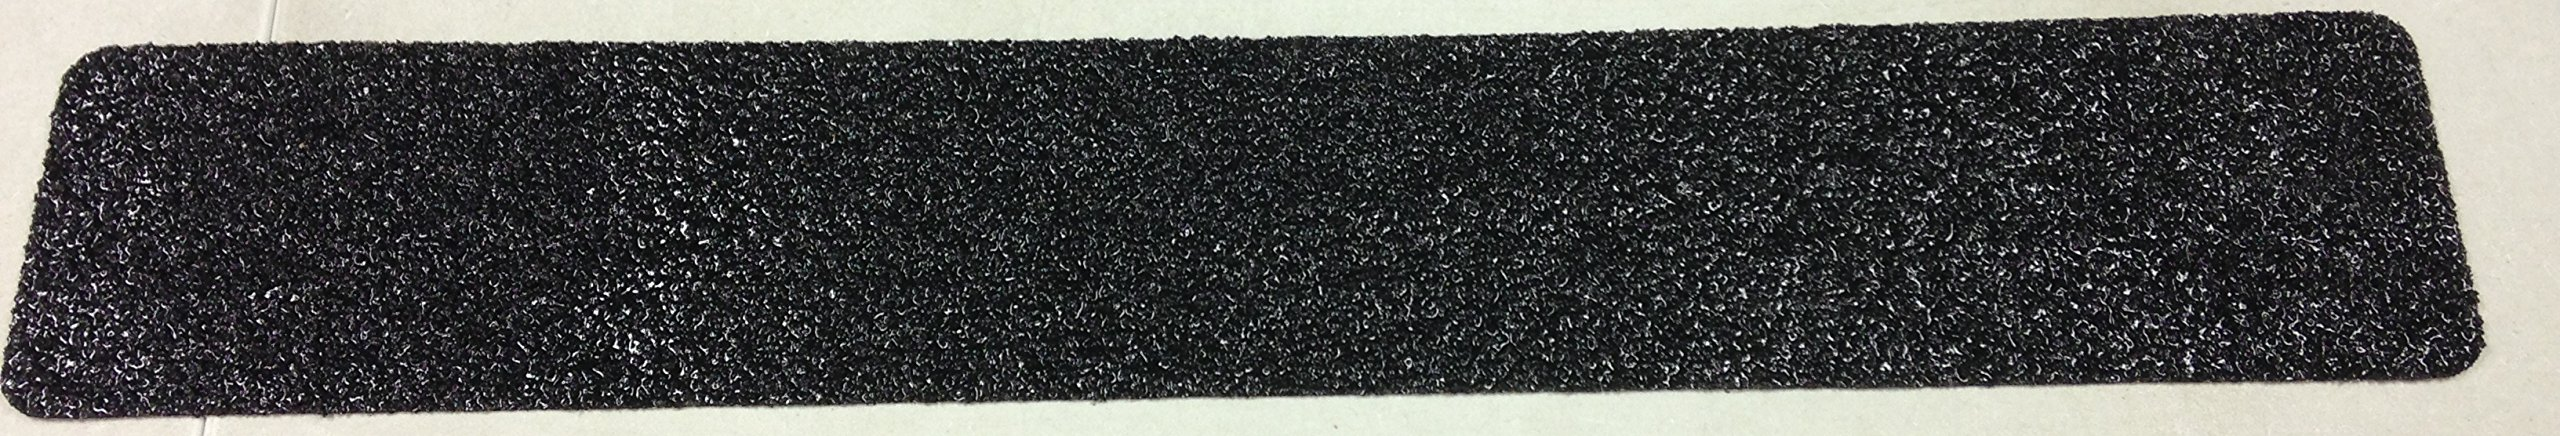 MASTER STOP 85819EC 6'' X 36'' EXTREME DUTY COARSE GRIT TAPE-BLACK COLOR by MASTER STOP